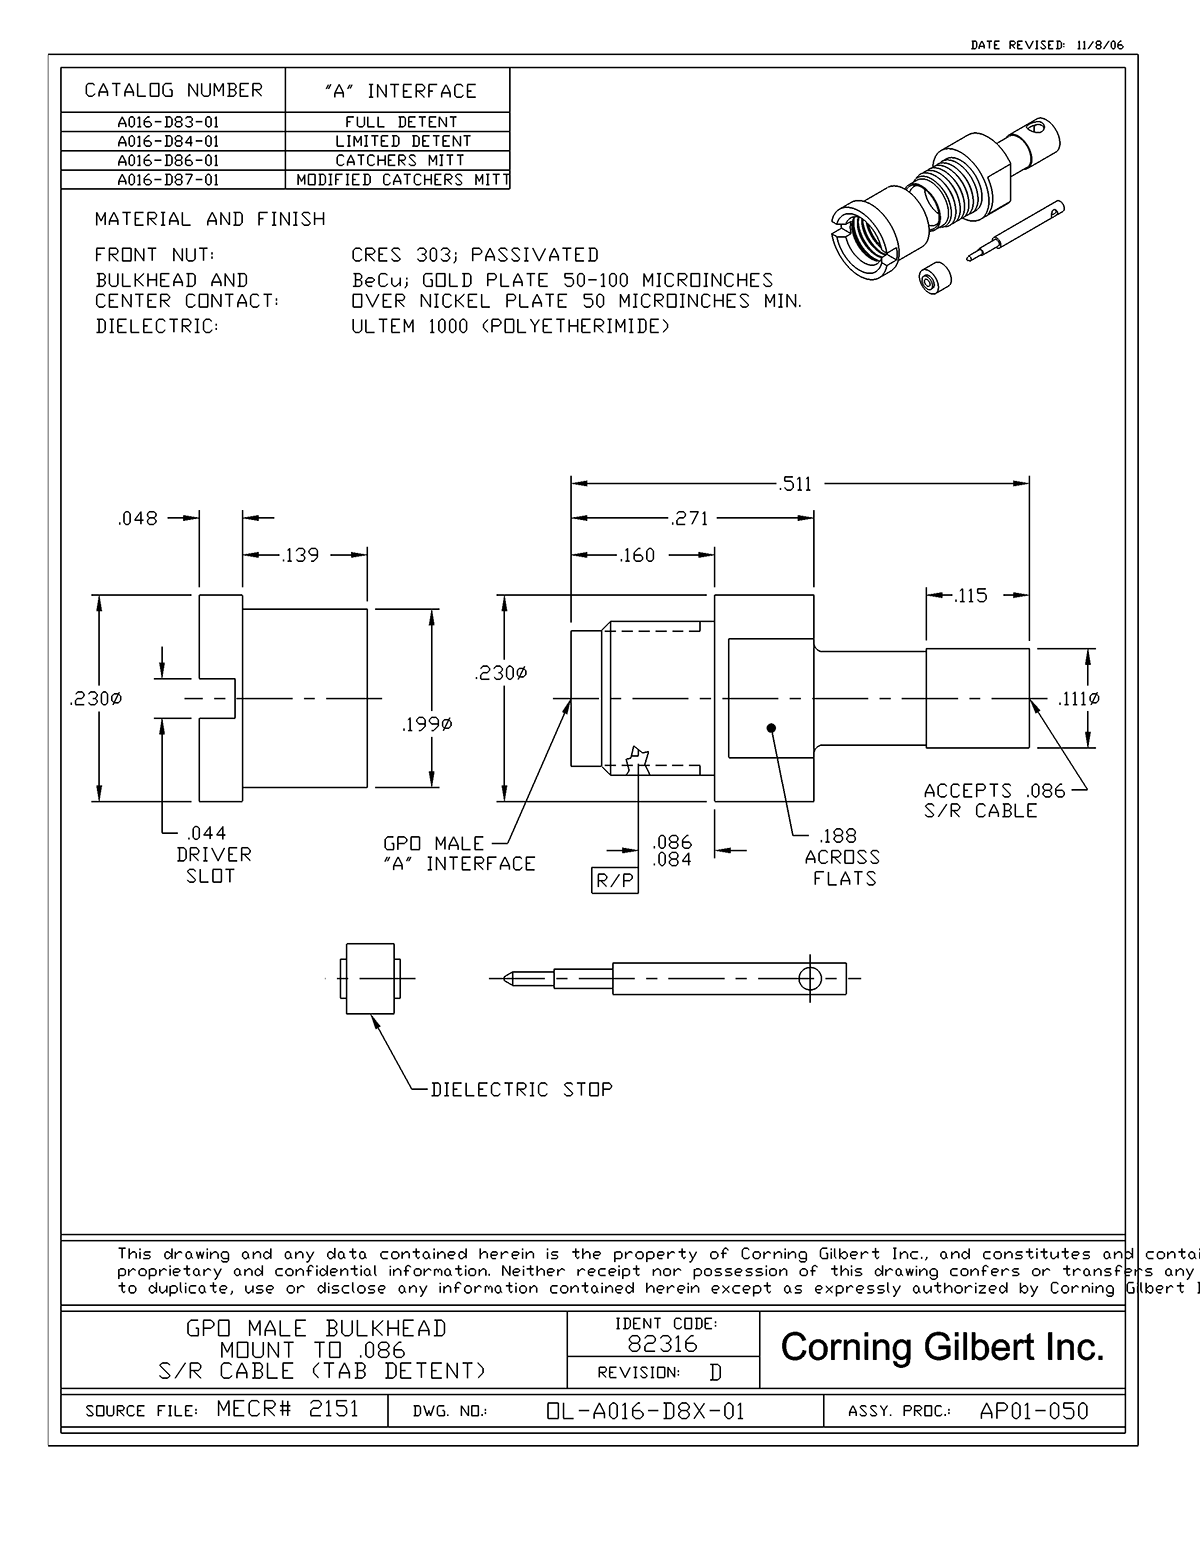 0119-435-3-cadsmall.png